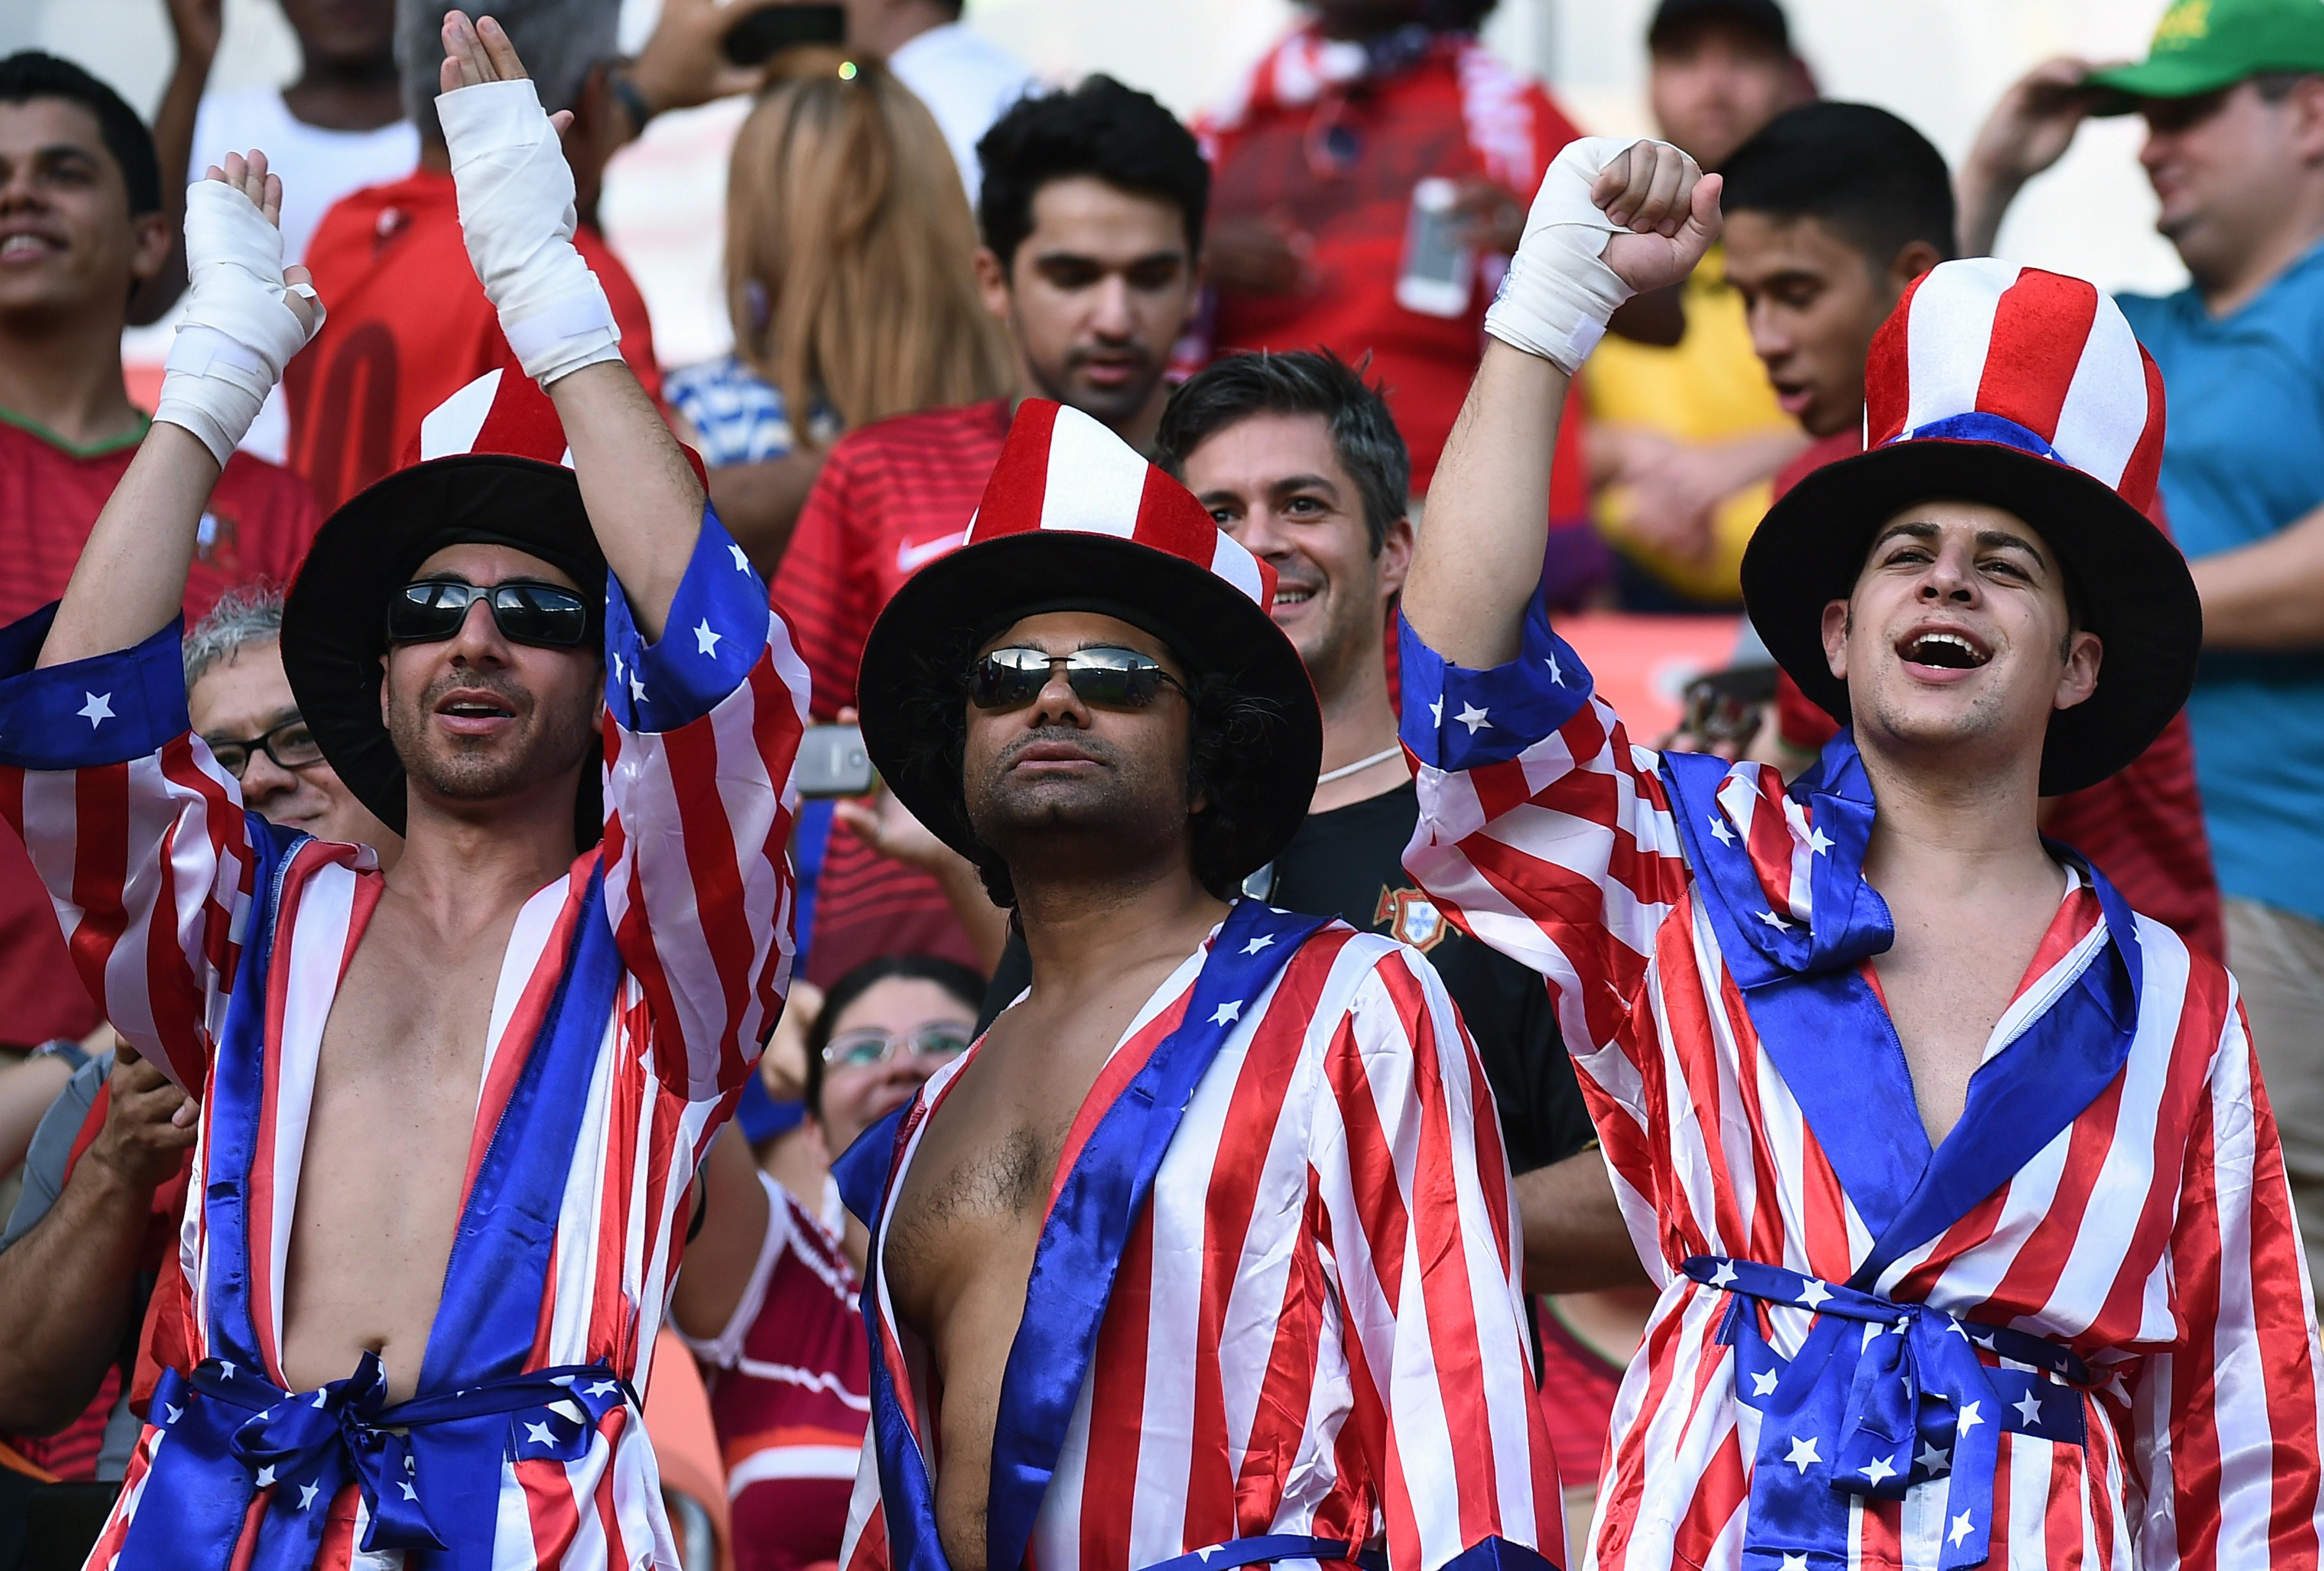 U.S. fans cheer before the start of the World Cup match between the U.S. and Portugal in Manaus, Brazil, on June 22, 2014.